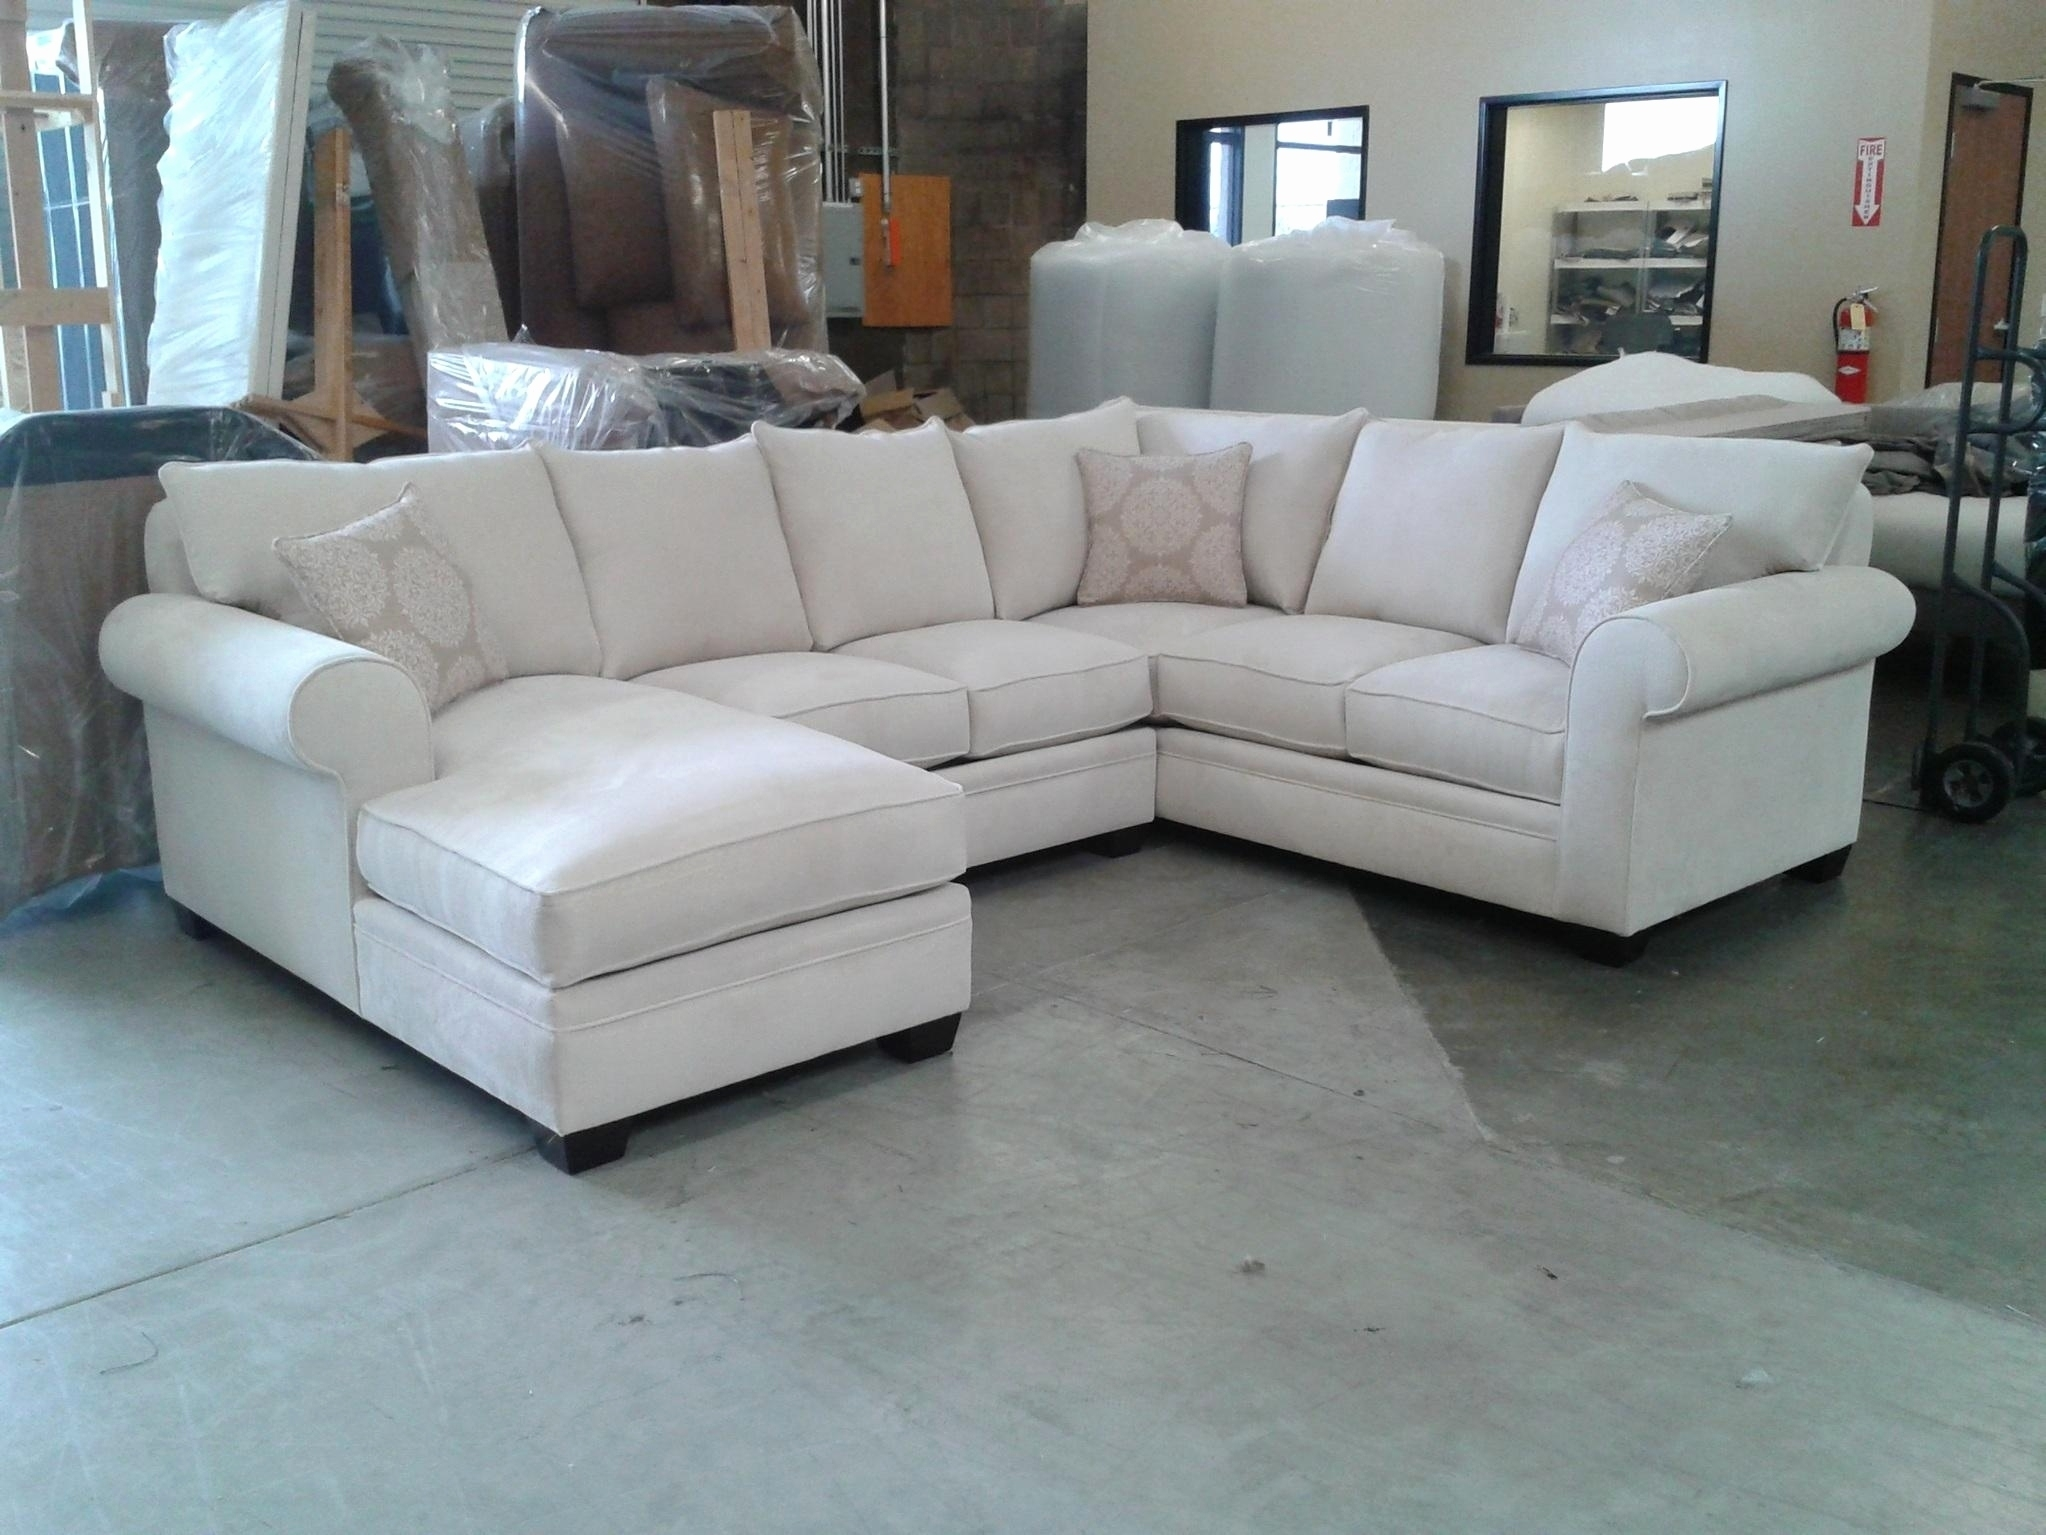 Luxury Down Sectional Sofa 2018 – Couches Ideas For Goose Down Sectional Sofas (Image 9 of 10)